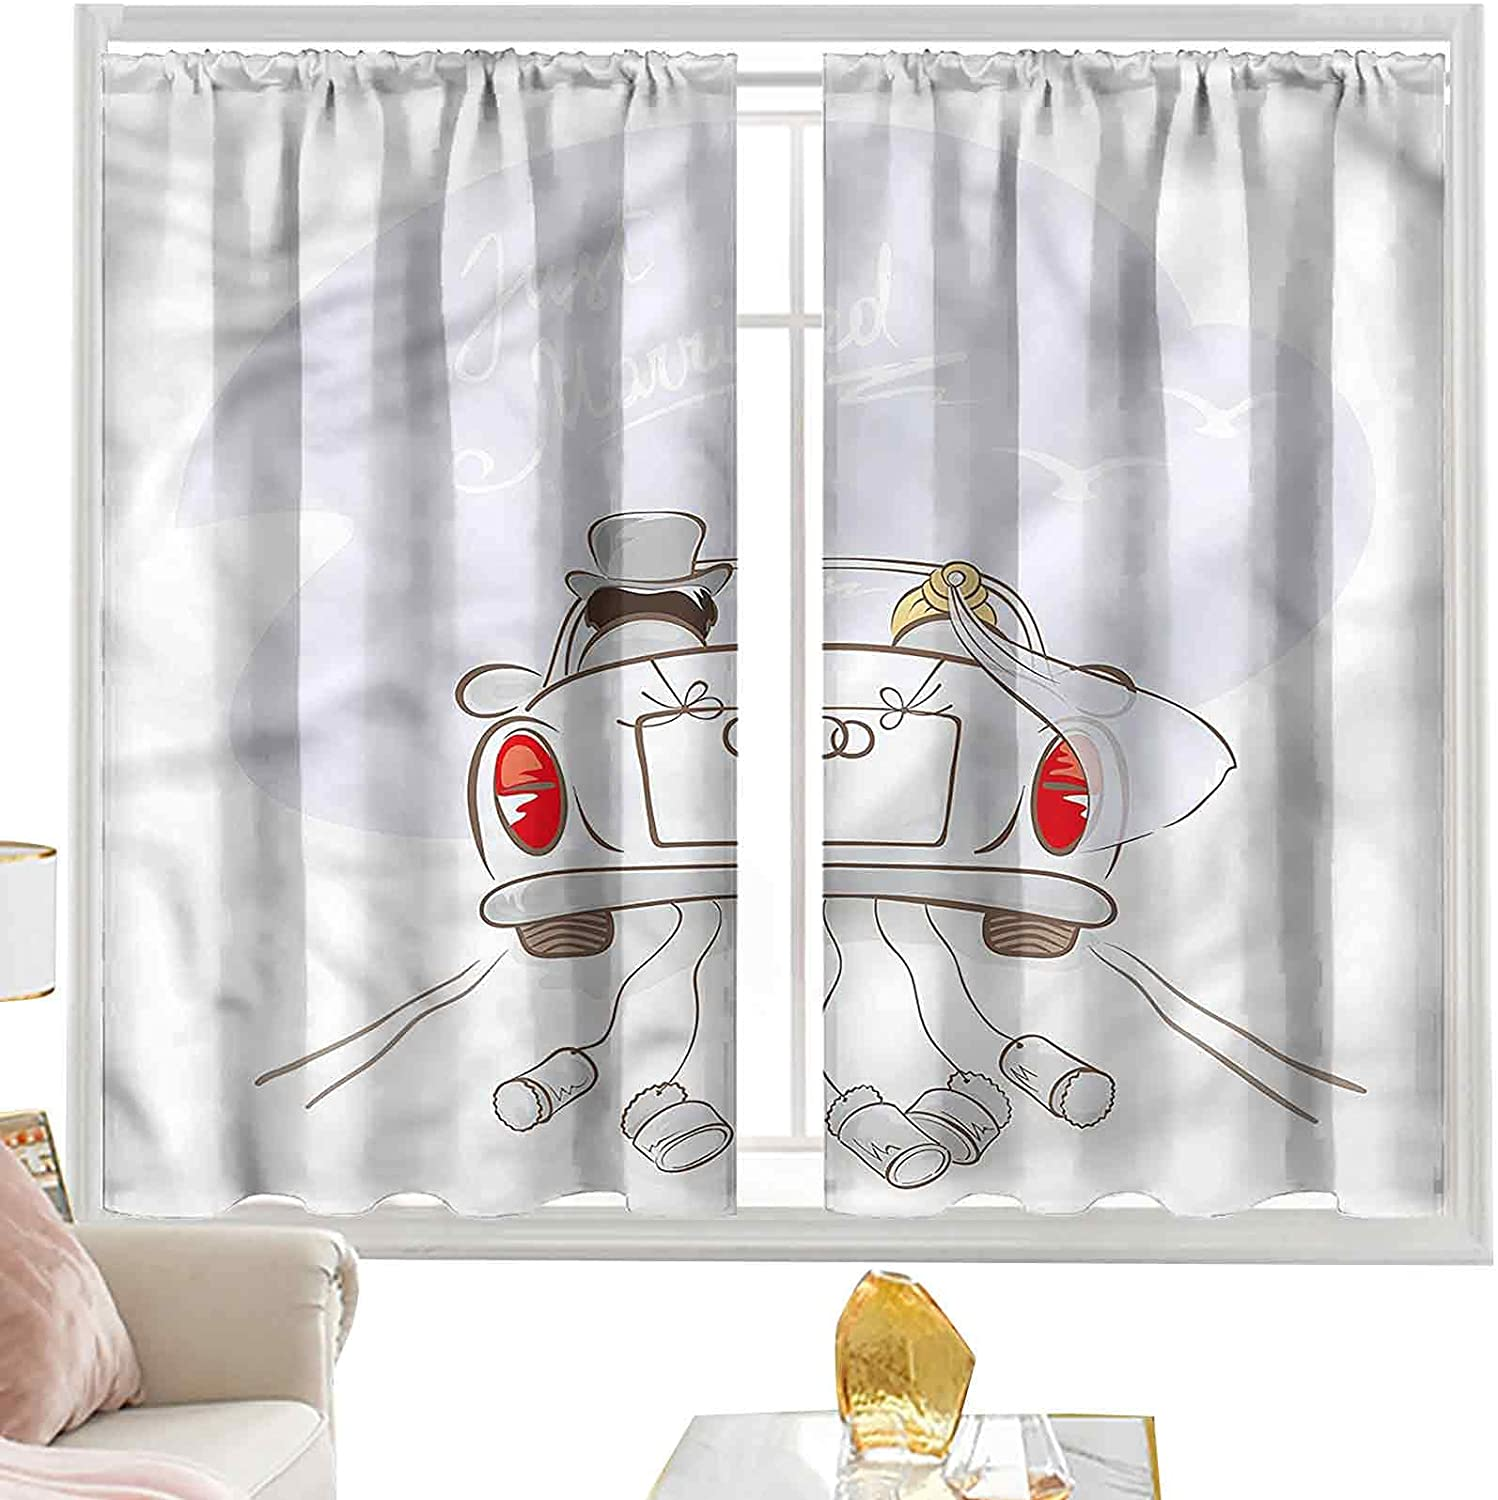 Insulating Curtains Wedding Now free shipping Retro Married Couple L63 x mart I Car W42